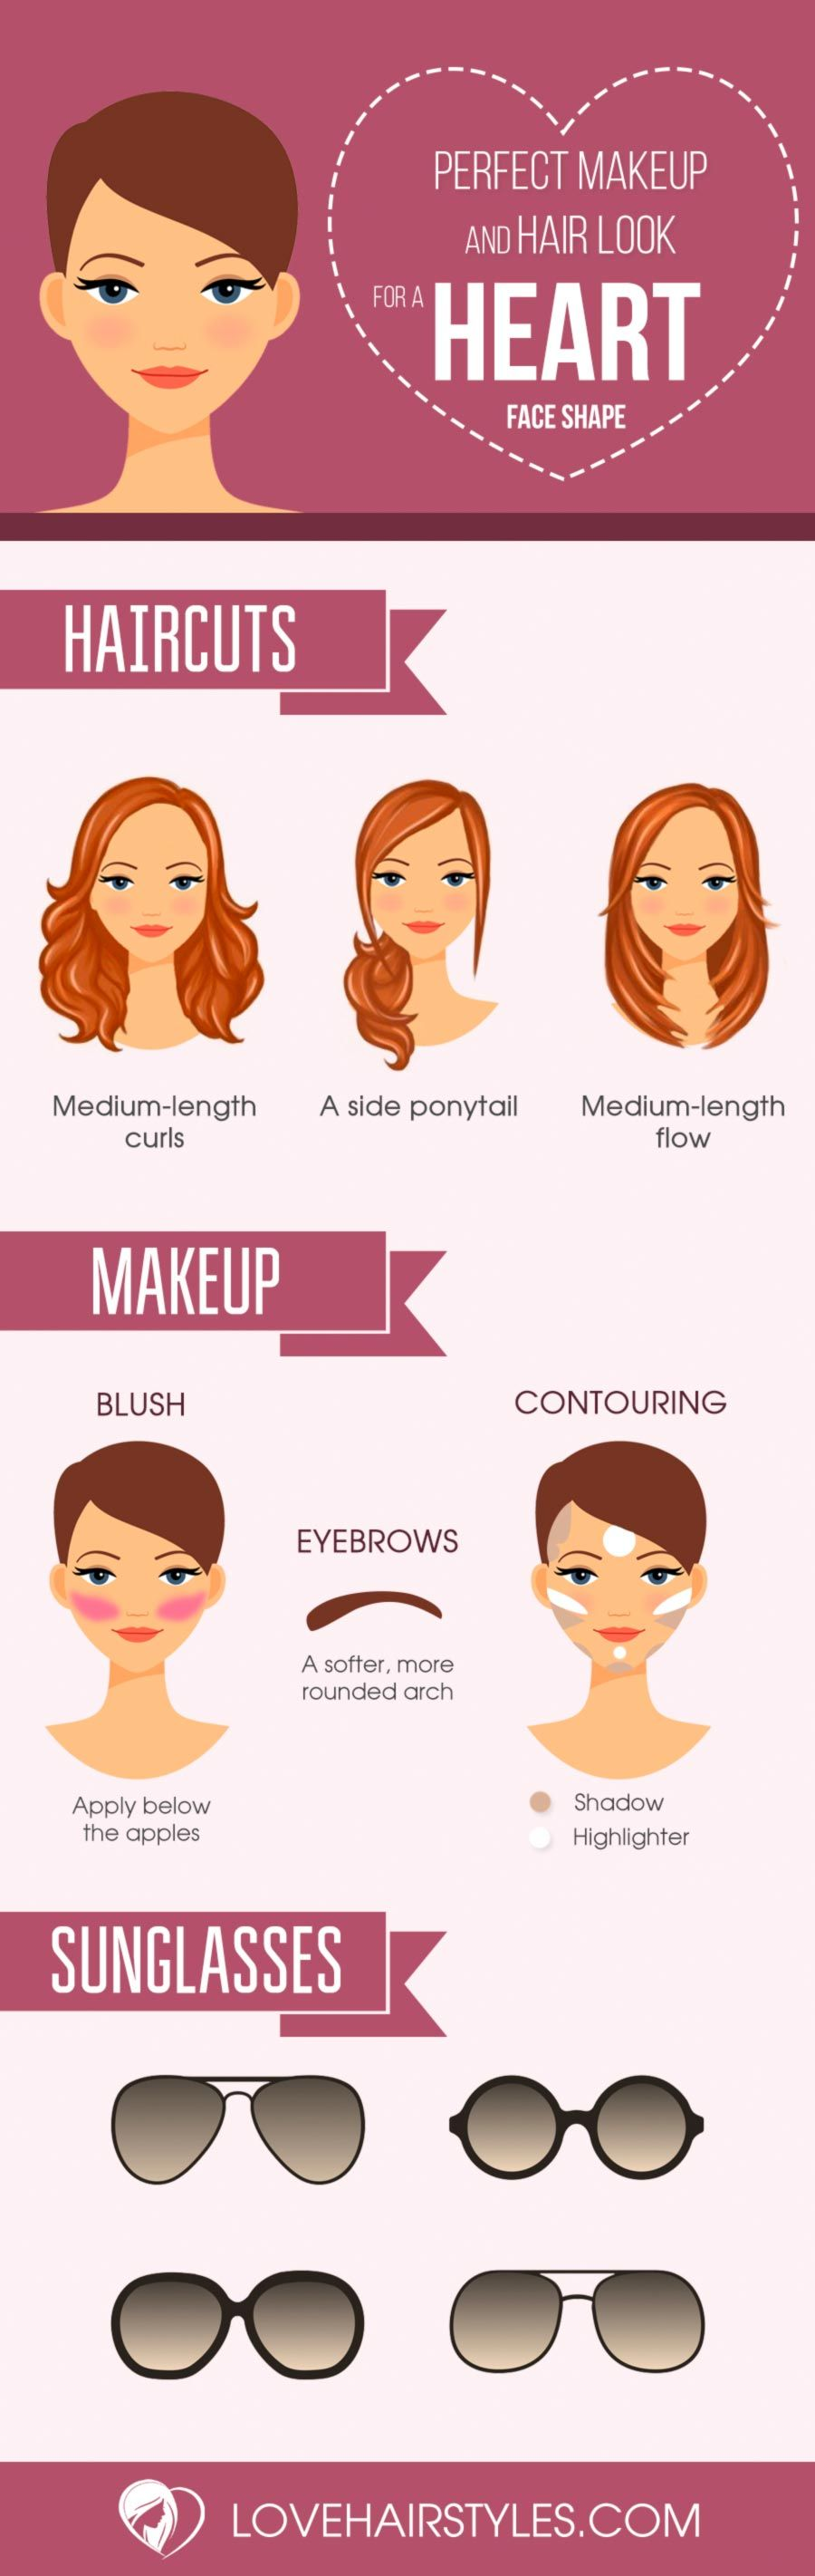 15 gorgeous haircuts for heart shaped faces | makeups | face